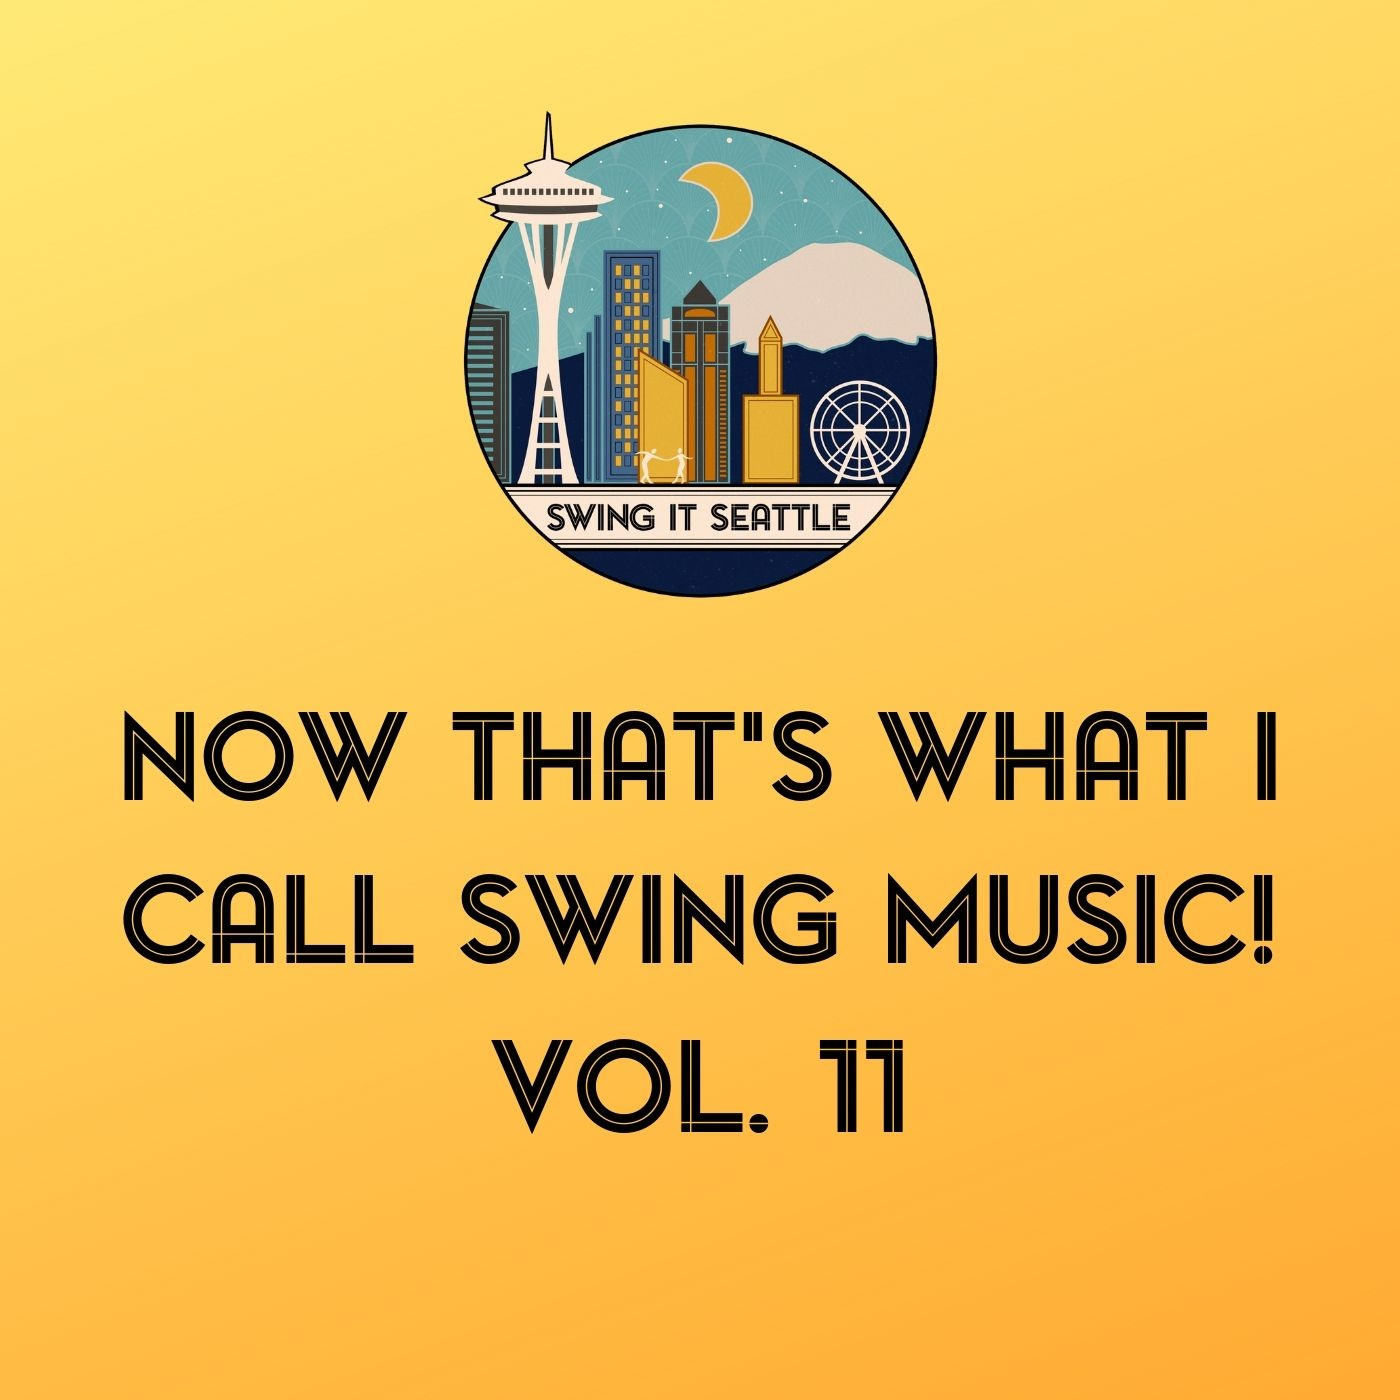 Copy of now that's what I call swing music! Vol. 11 (1).jpg